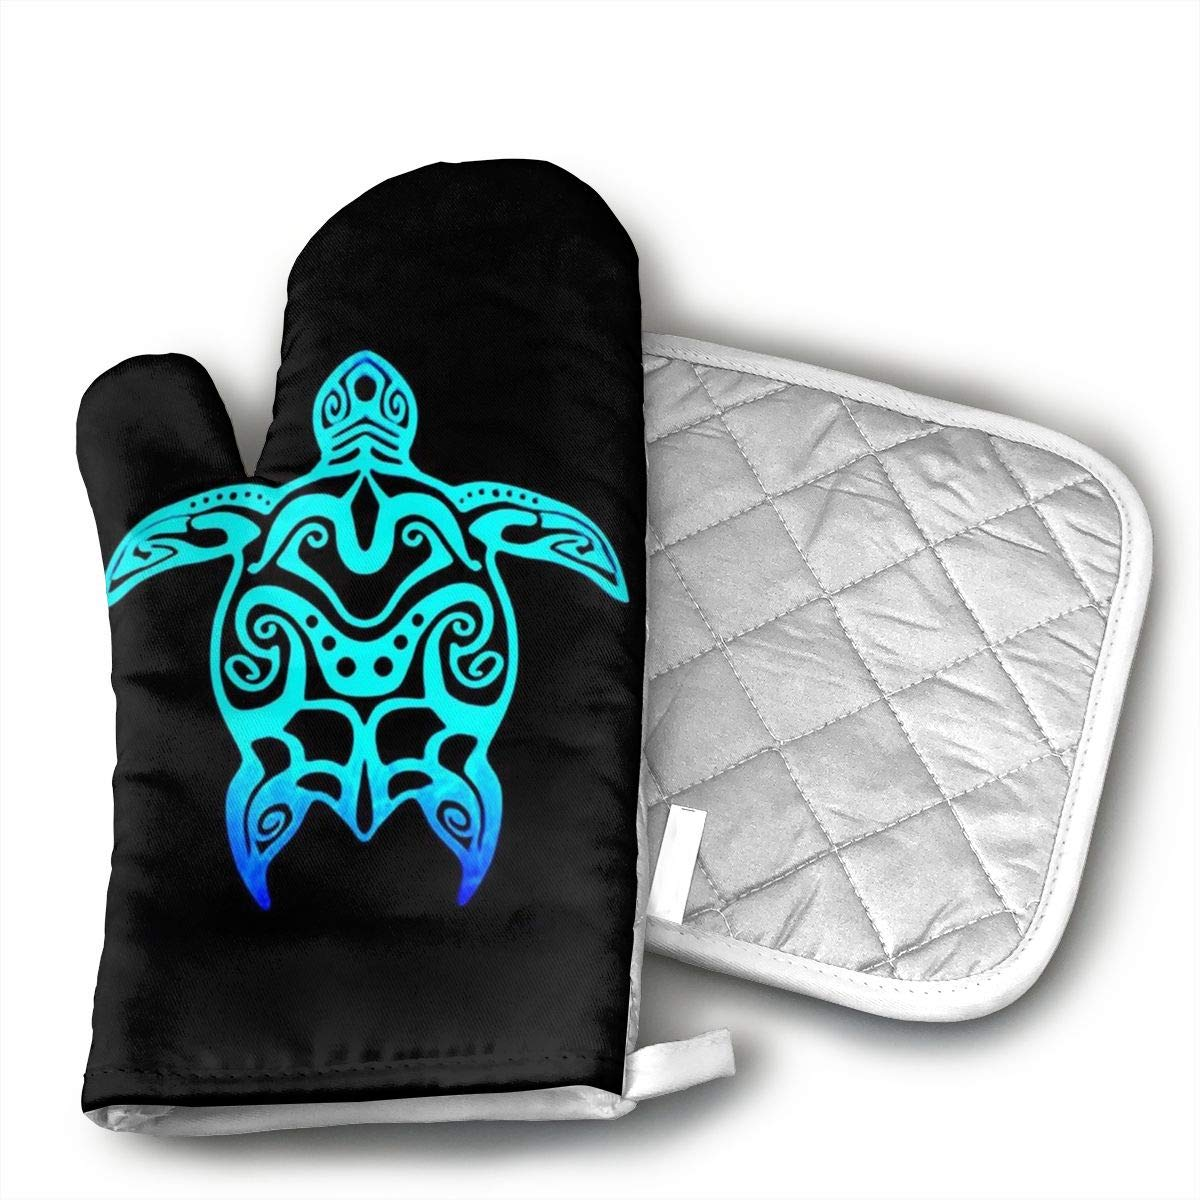 MKDIG Sea Turtle Oven Mitts and Pads for Safe handling of hot cookware